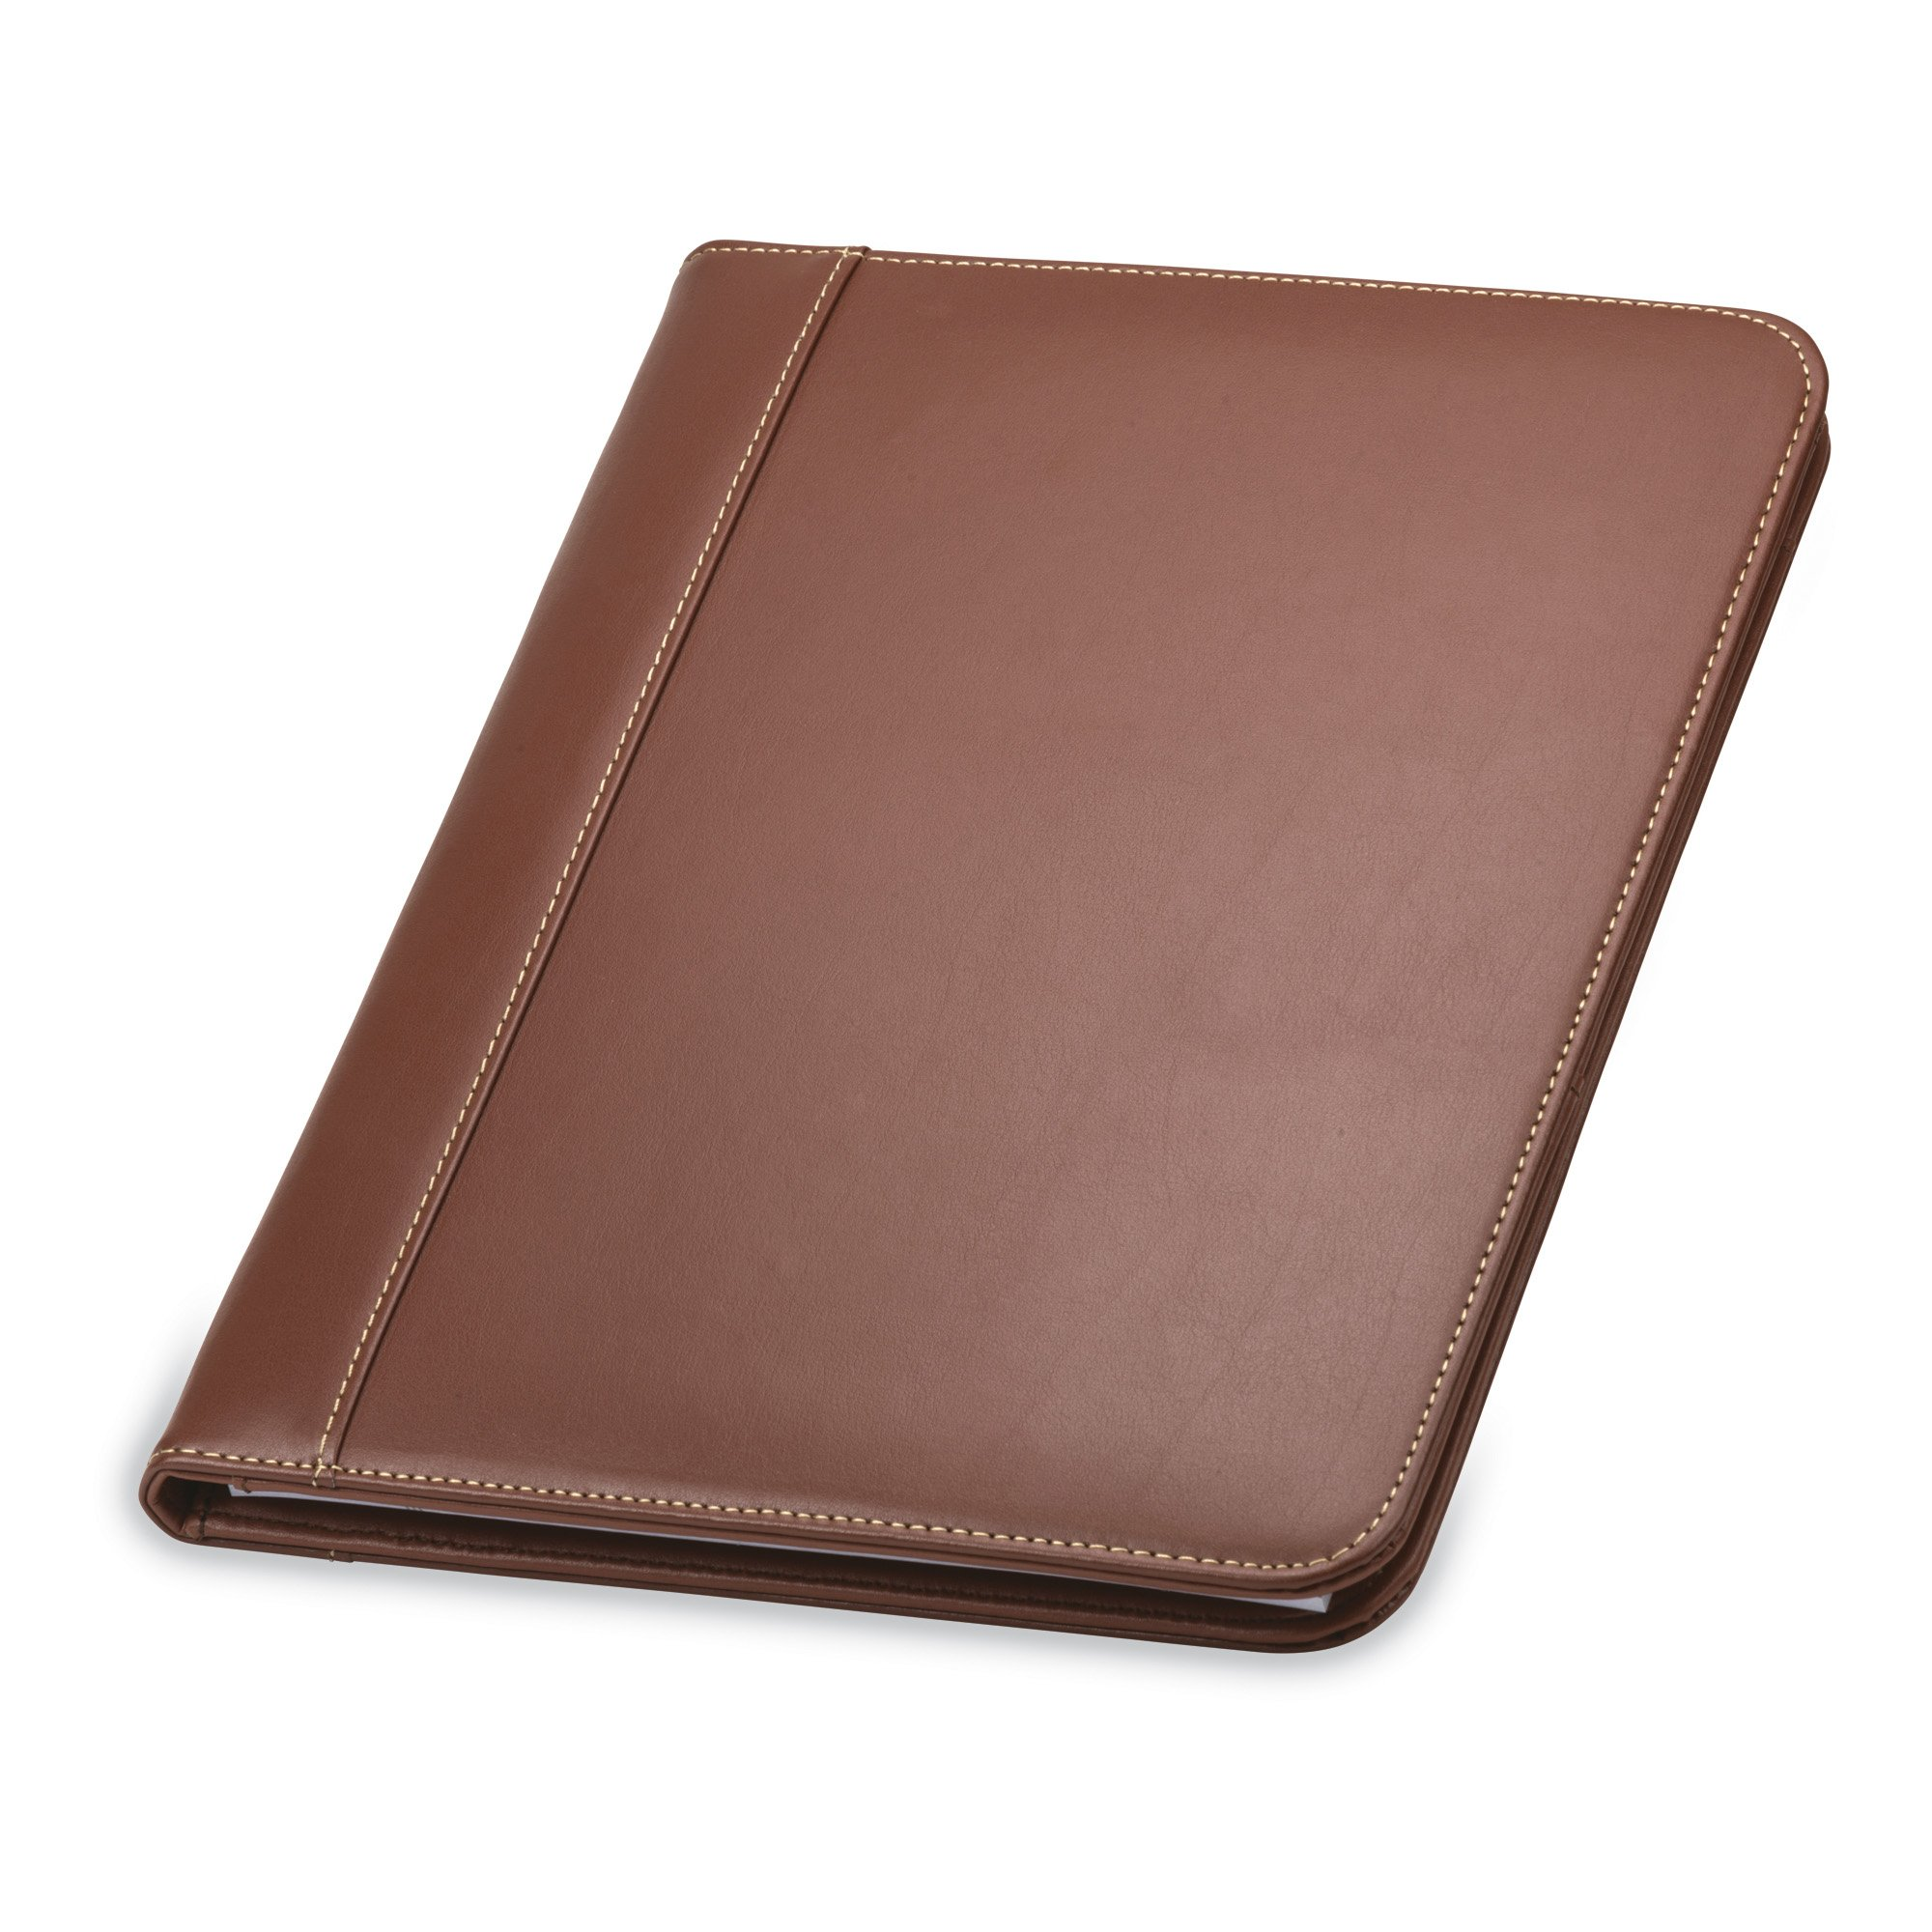 Samsill Contrast Stitch Leather Padfolio - Portfolio Folder/Business Portfolio for Men & Women - Resume Document Organizer, 8.5 x 11 Writing Pad, Tan by Samsill